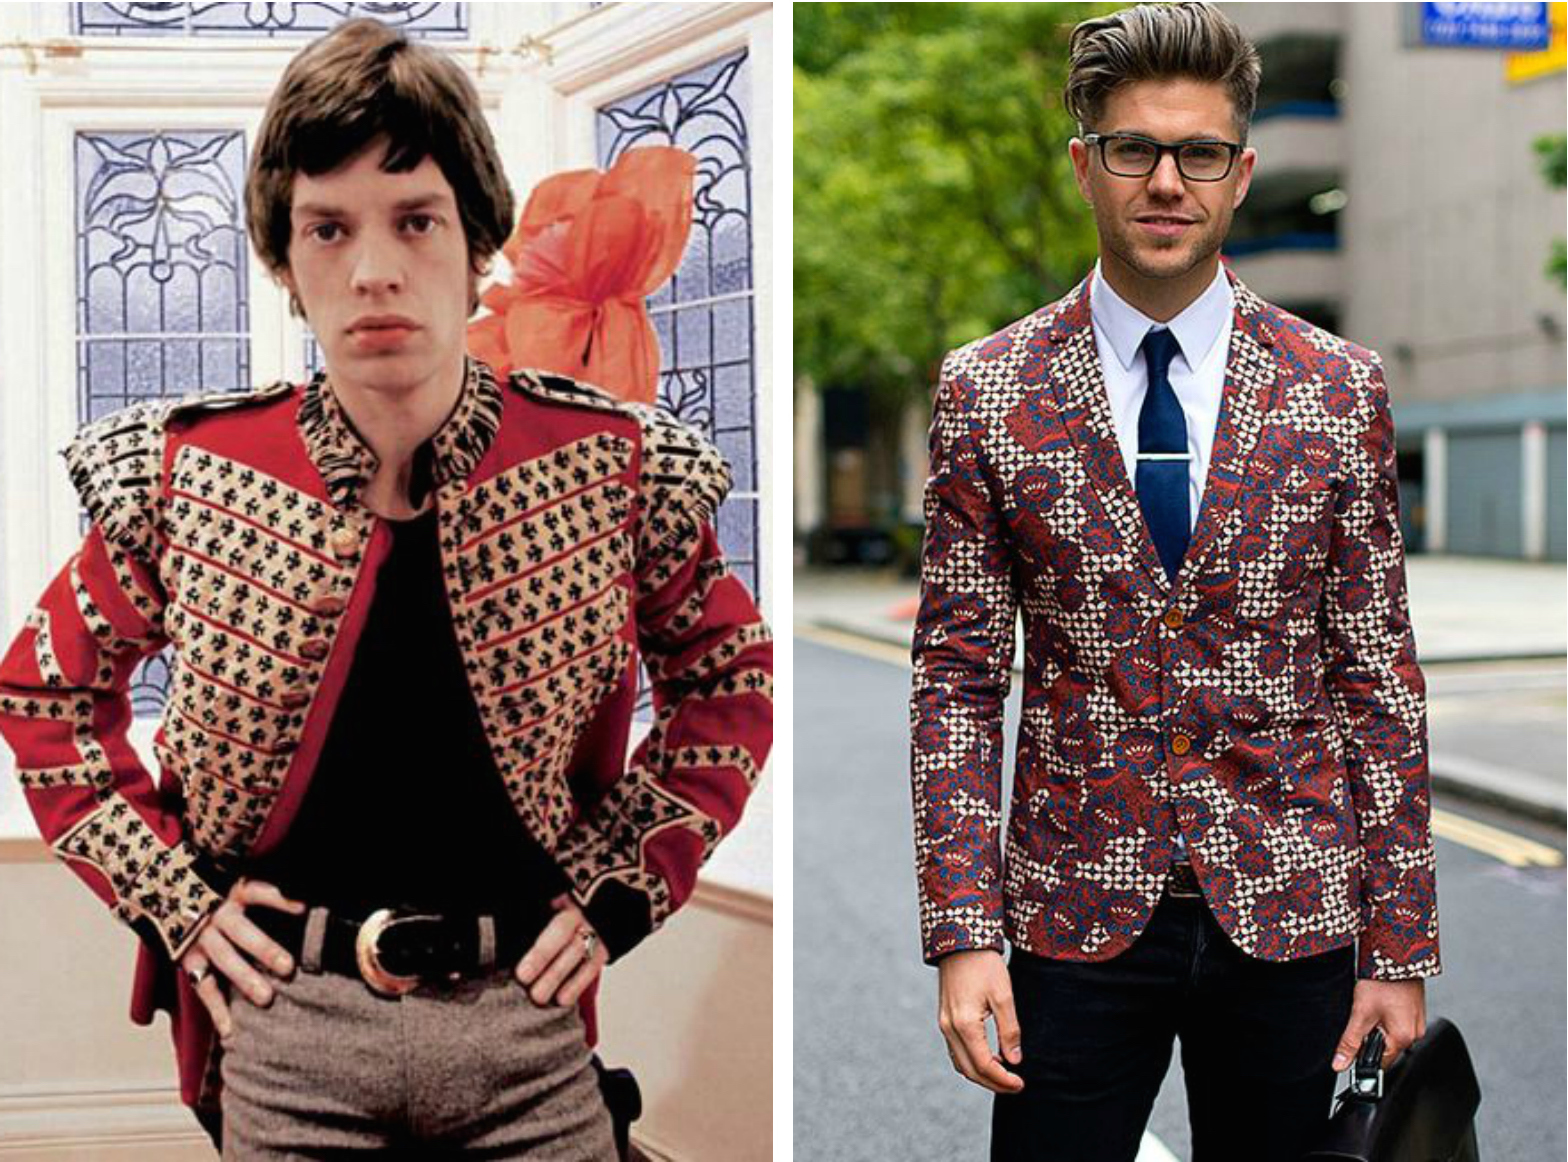 From left to right: Mick Jagger in 1967 wearing a red patterned blazer, and patterned blazer featured in Vogue México.